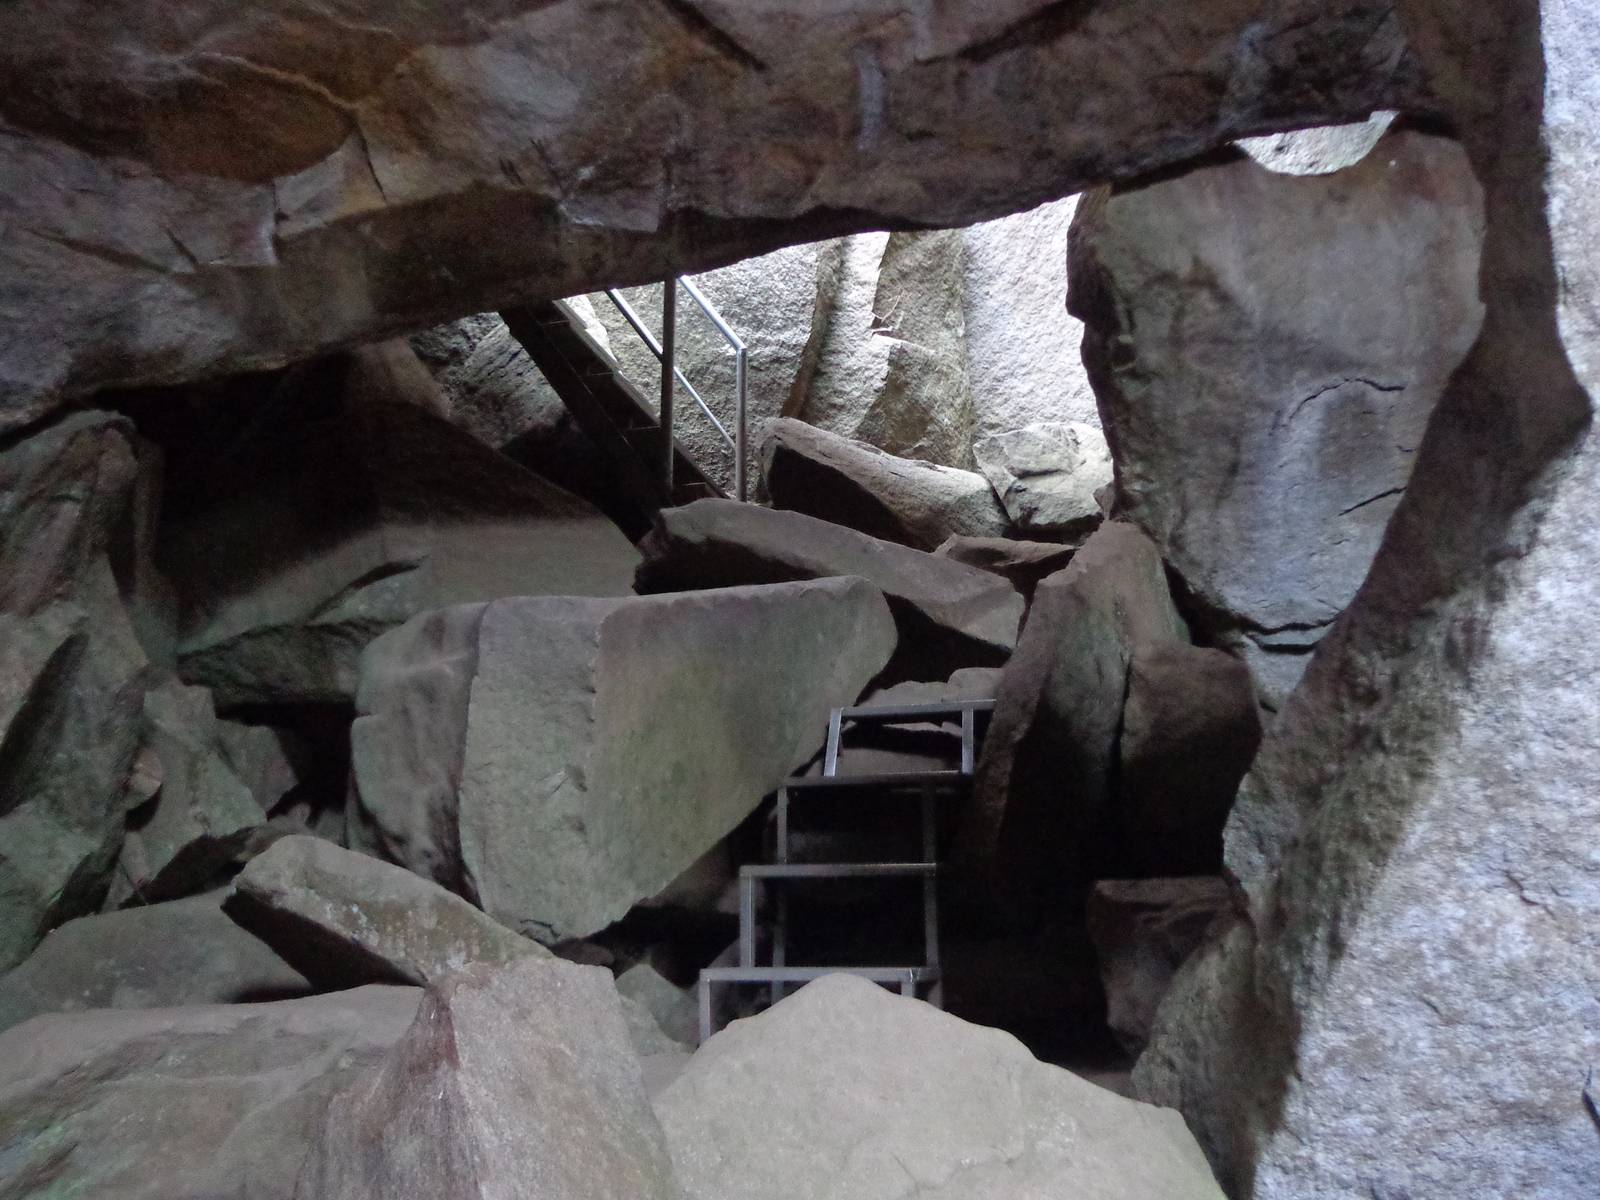 Edakkal caves consists of two cavities. This one is at a lower altitude.